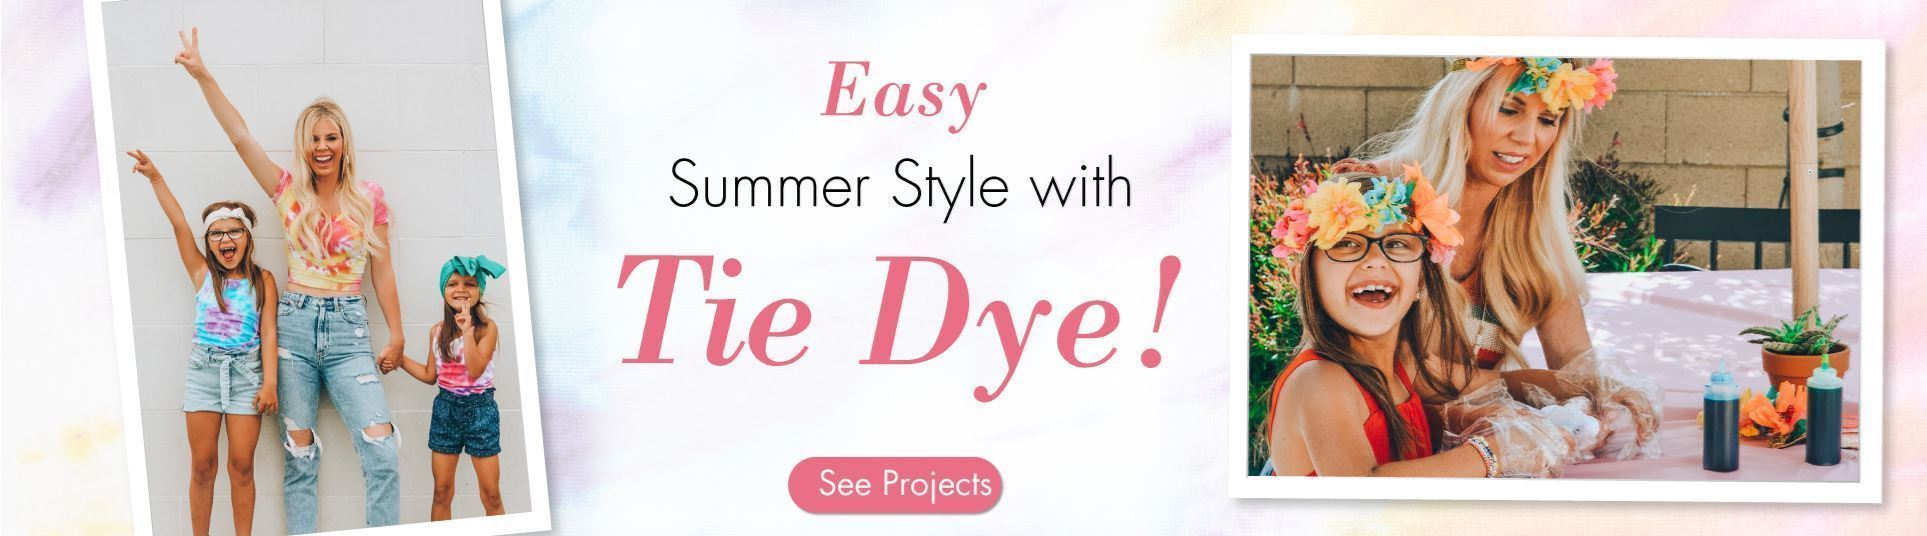 Image Fun Summer Tie-Dye Fashion